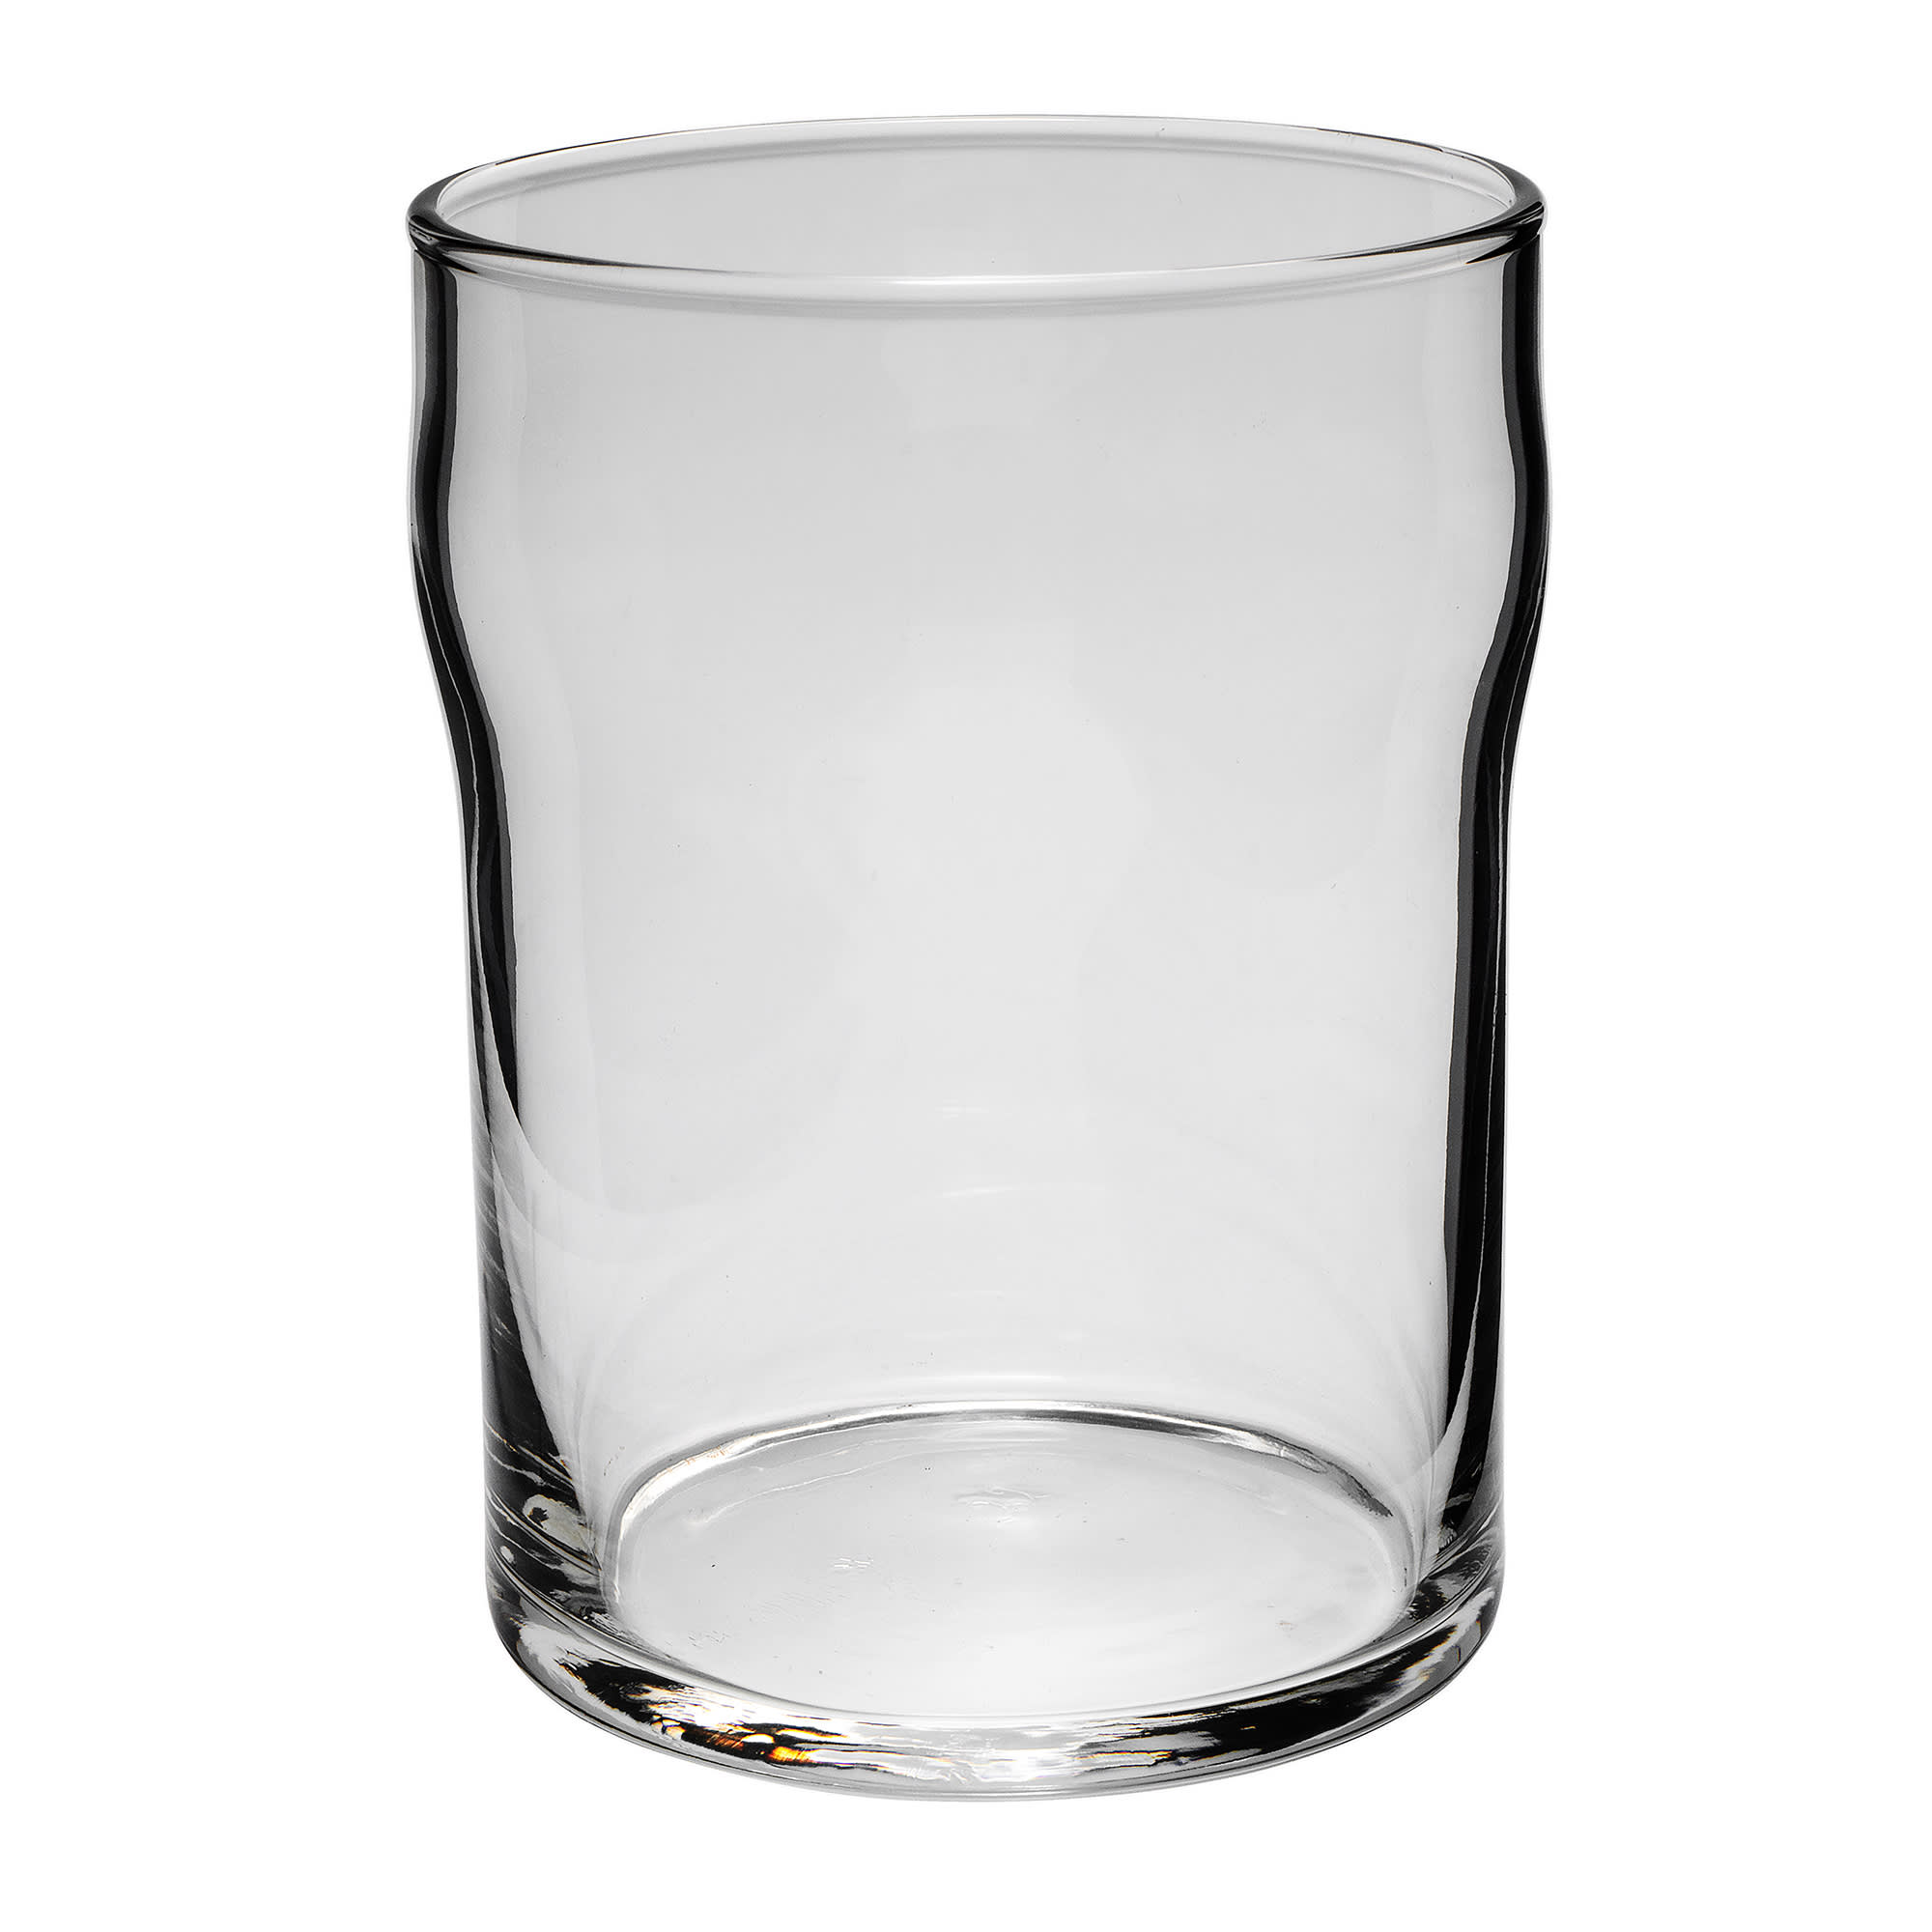 Libbey 1910HT 10 oz NO-NIK Room Tumbler Glass - Safedge Rim